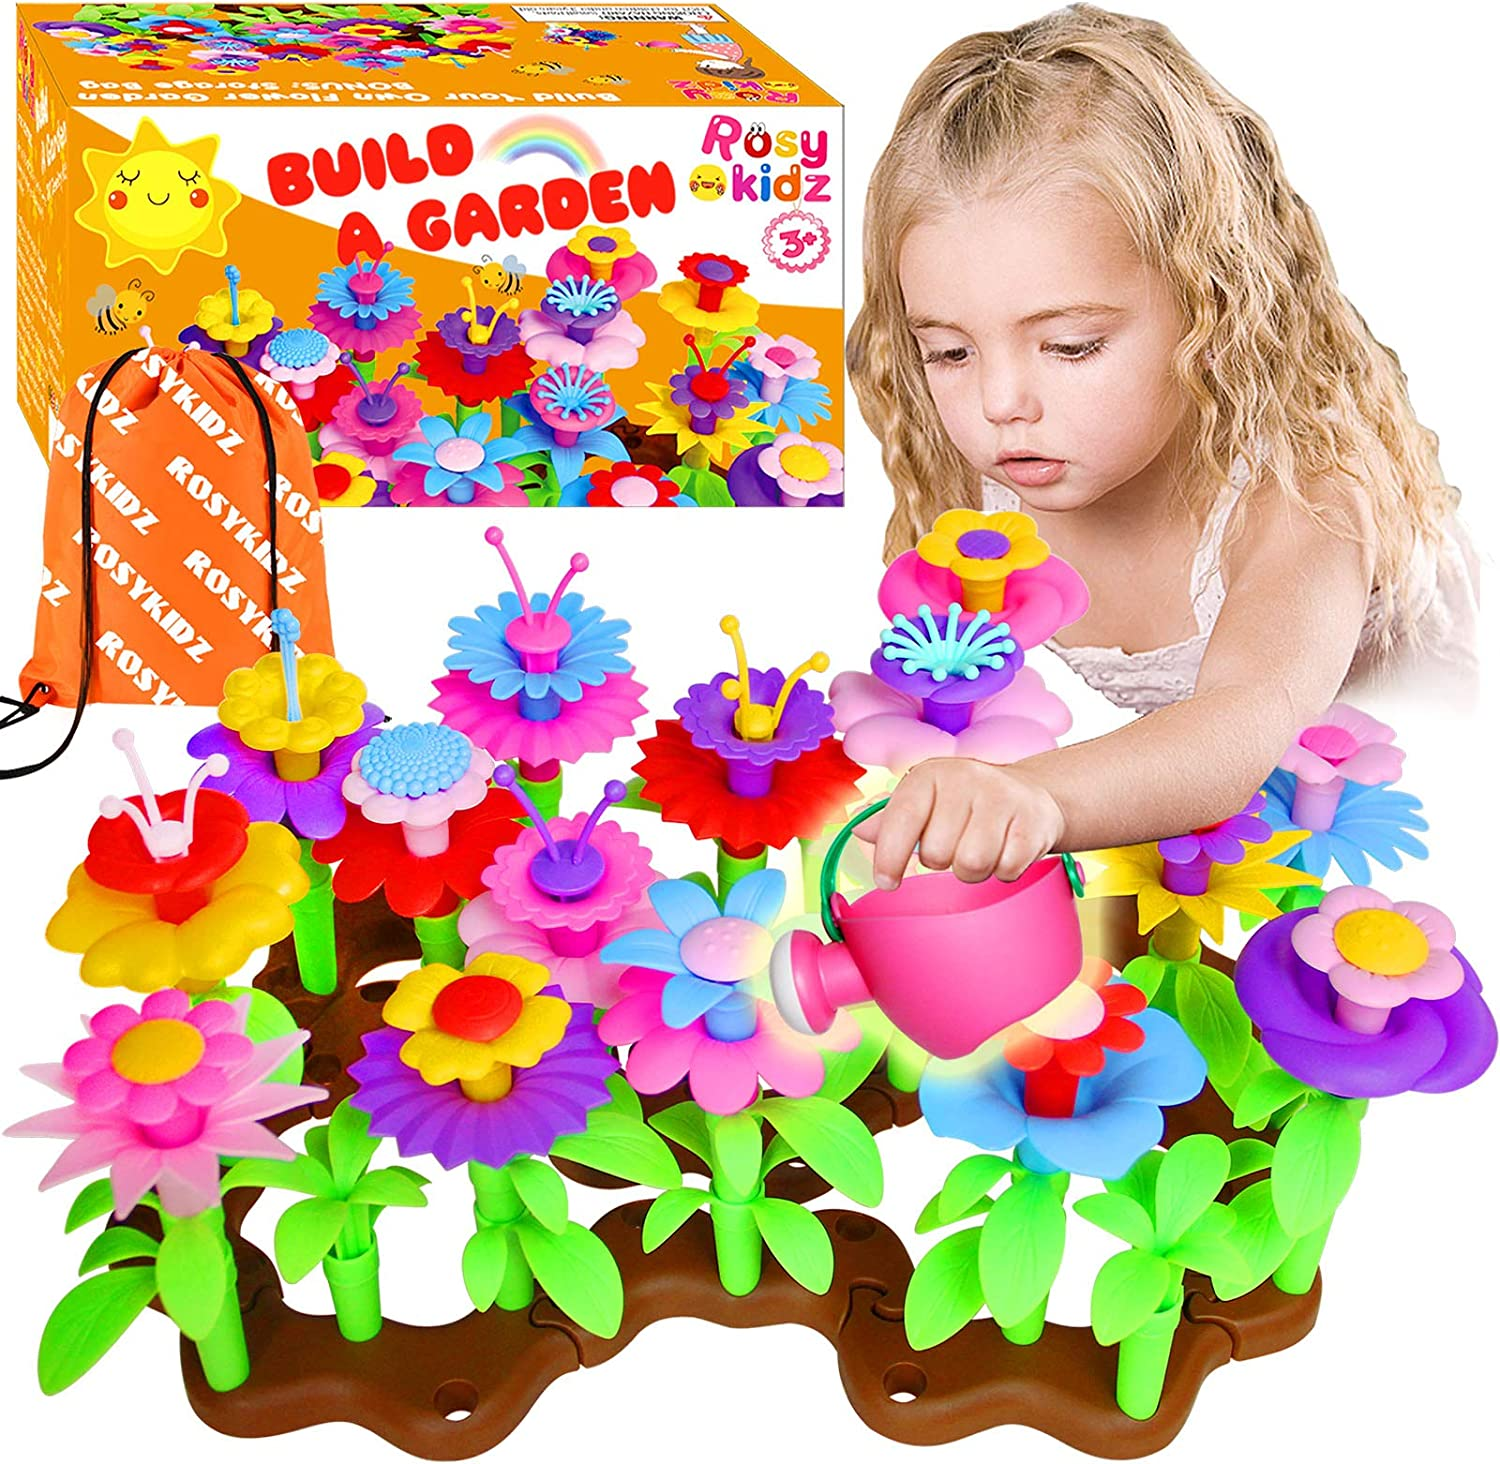 ROSYKIDZ Flower Garden Building Toys for Girls - [ 106 PCS ] STEM Toy Gardening Pretend Play Gift for Kids Age 3 4 5 6 Years Old - Preschool Children Girl Gifts Toys Set with Storage Bag